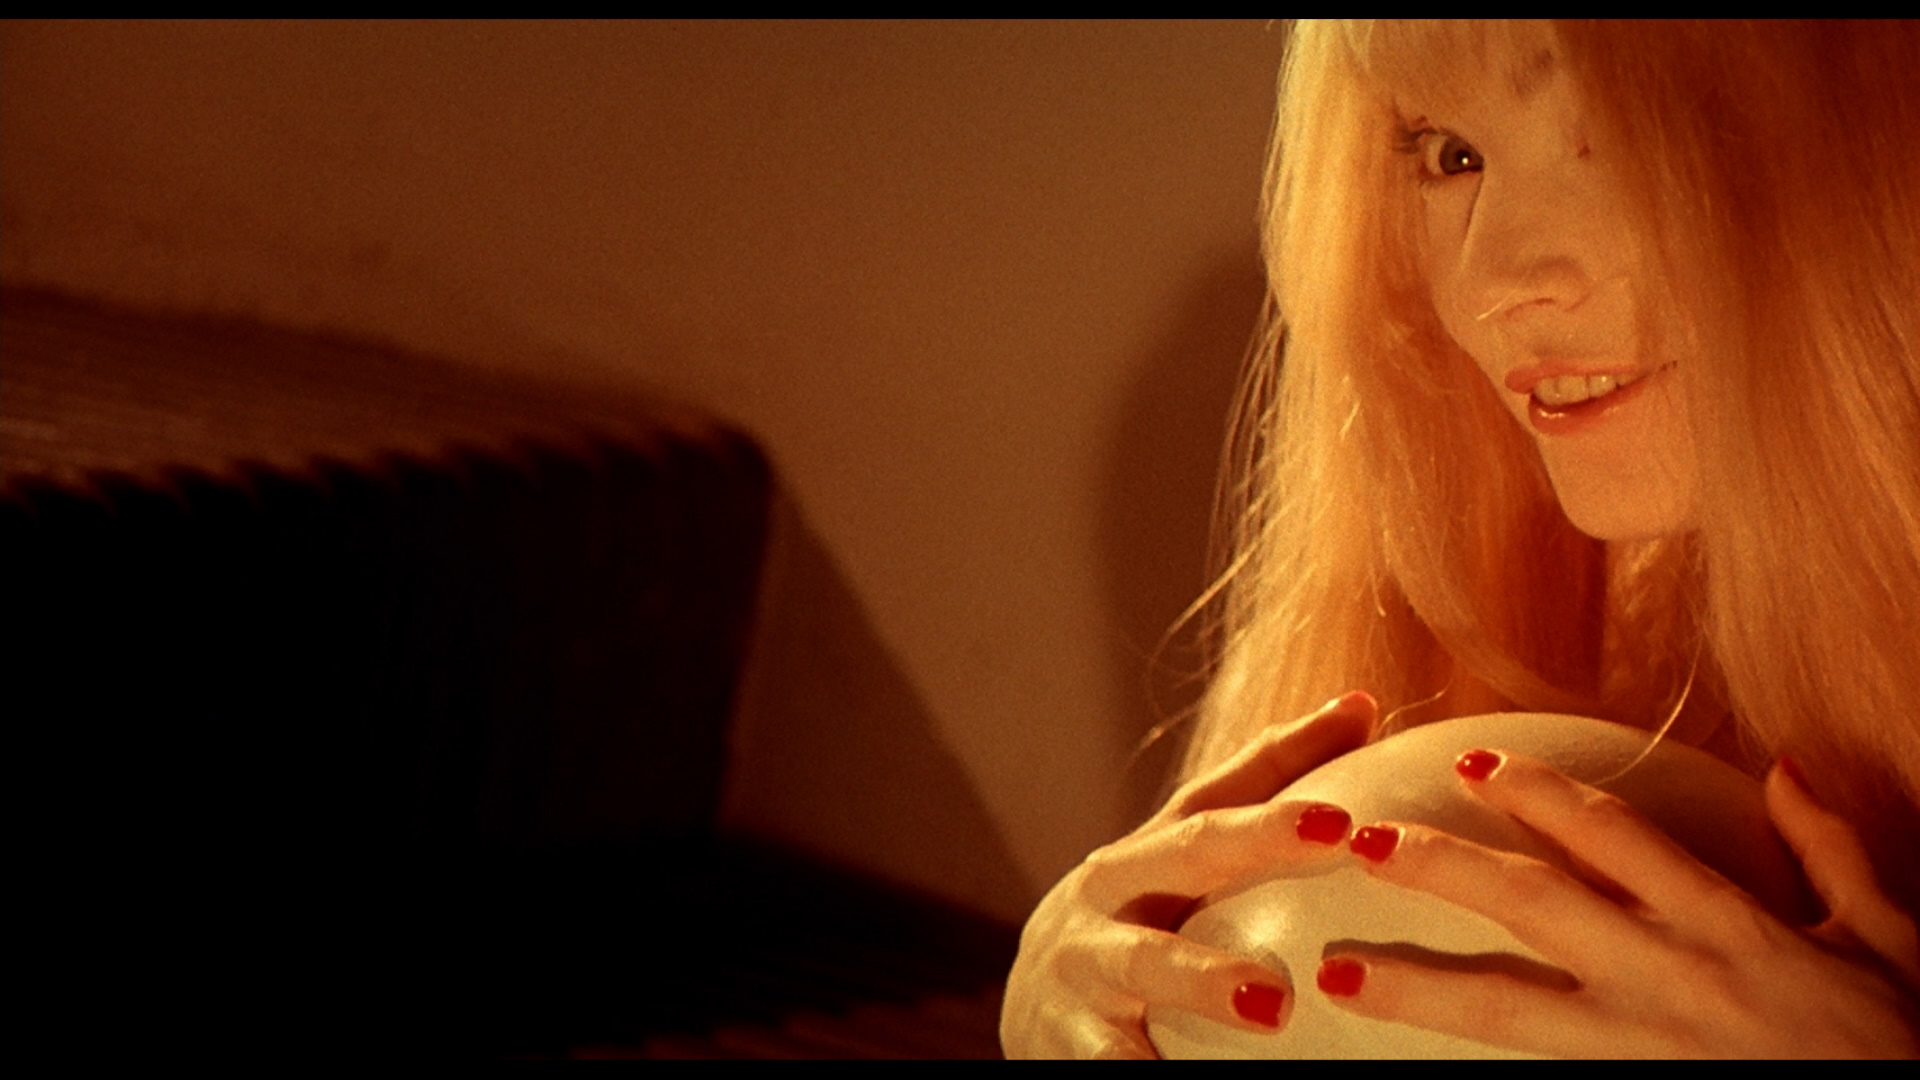 The Devil, courtesy of Mario Bava?